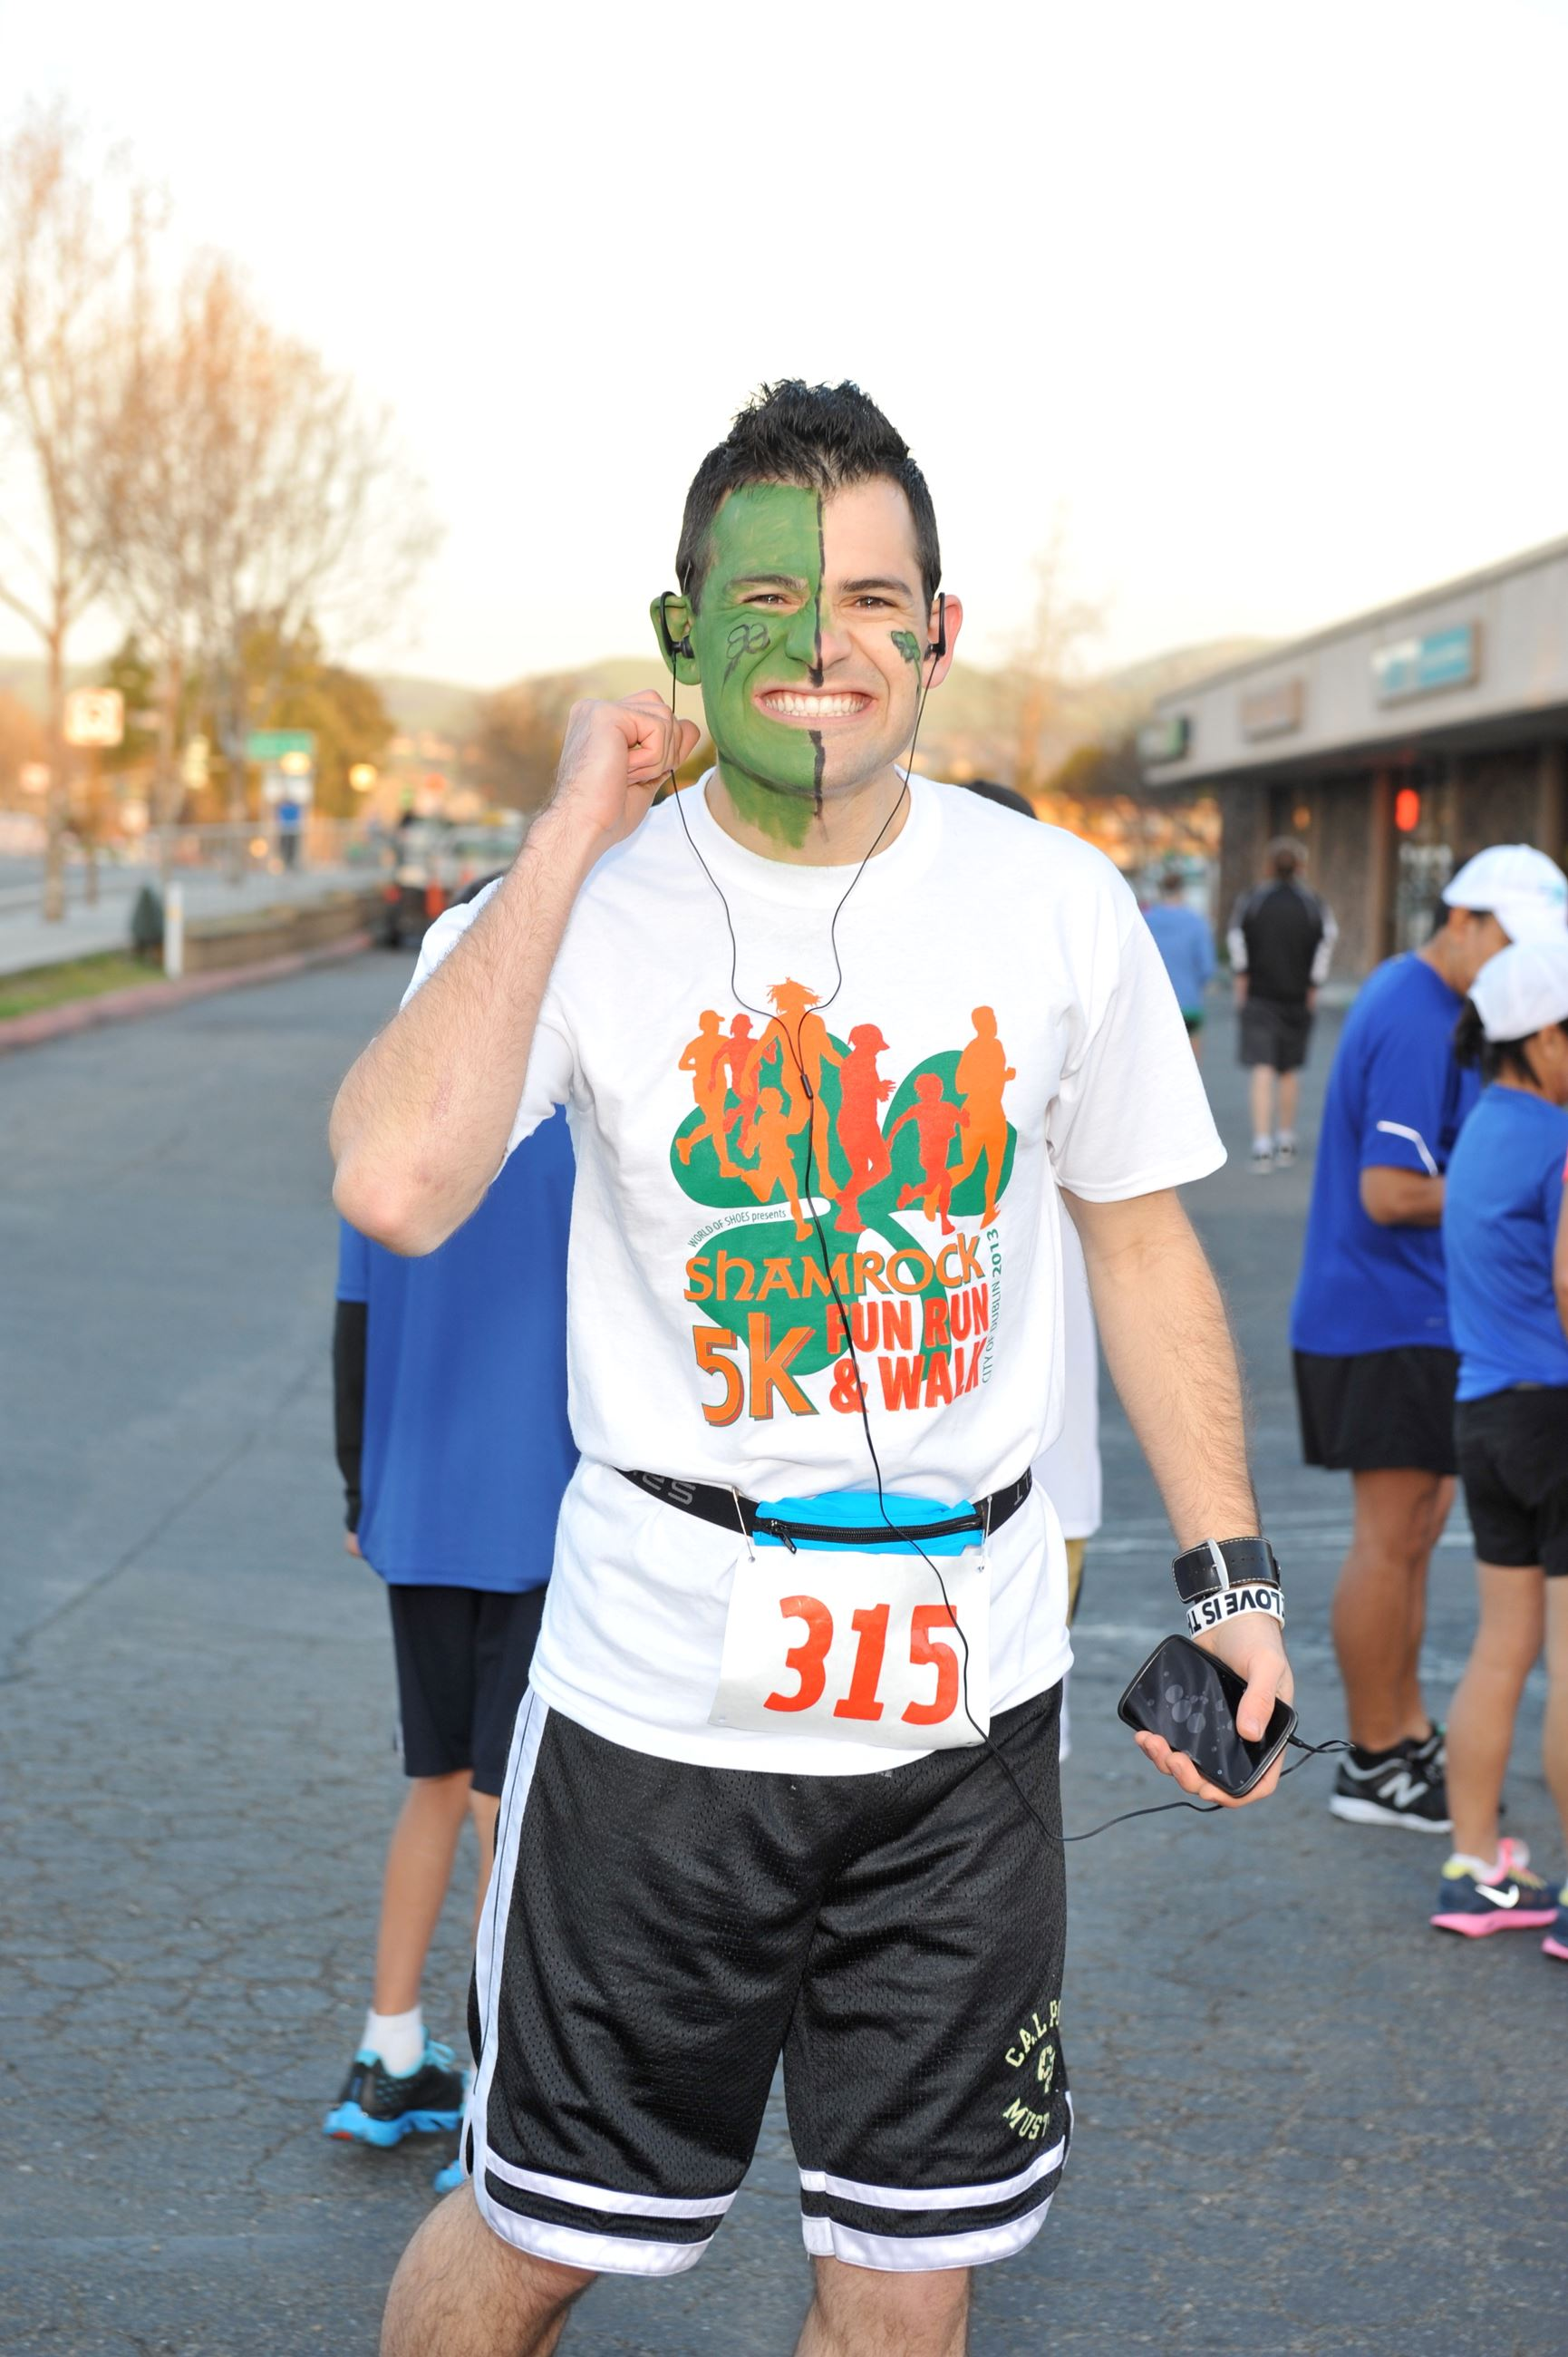 Shamrock 5K Fun Run Participant